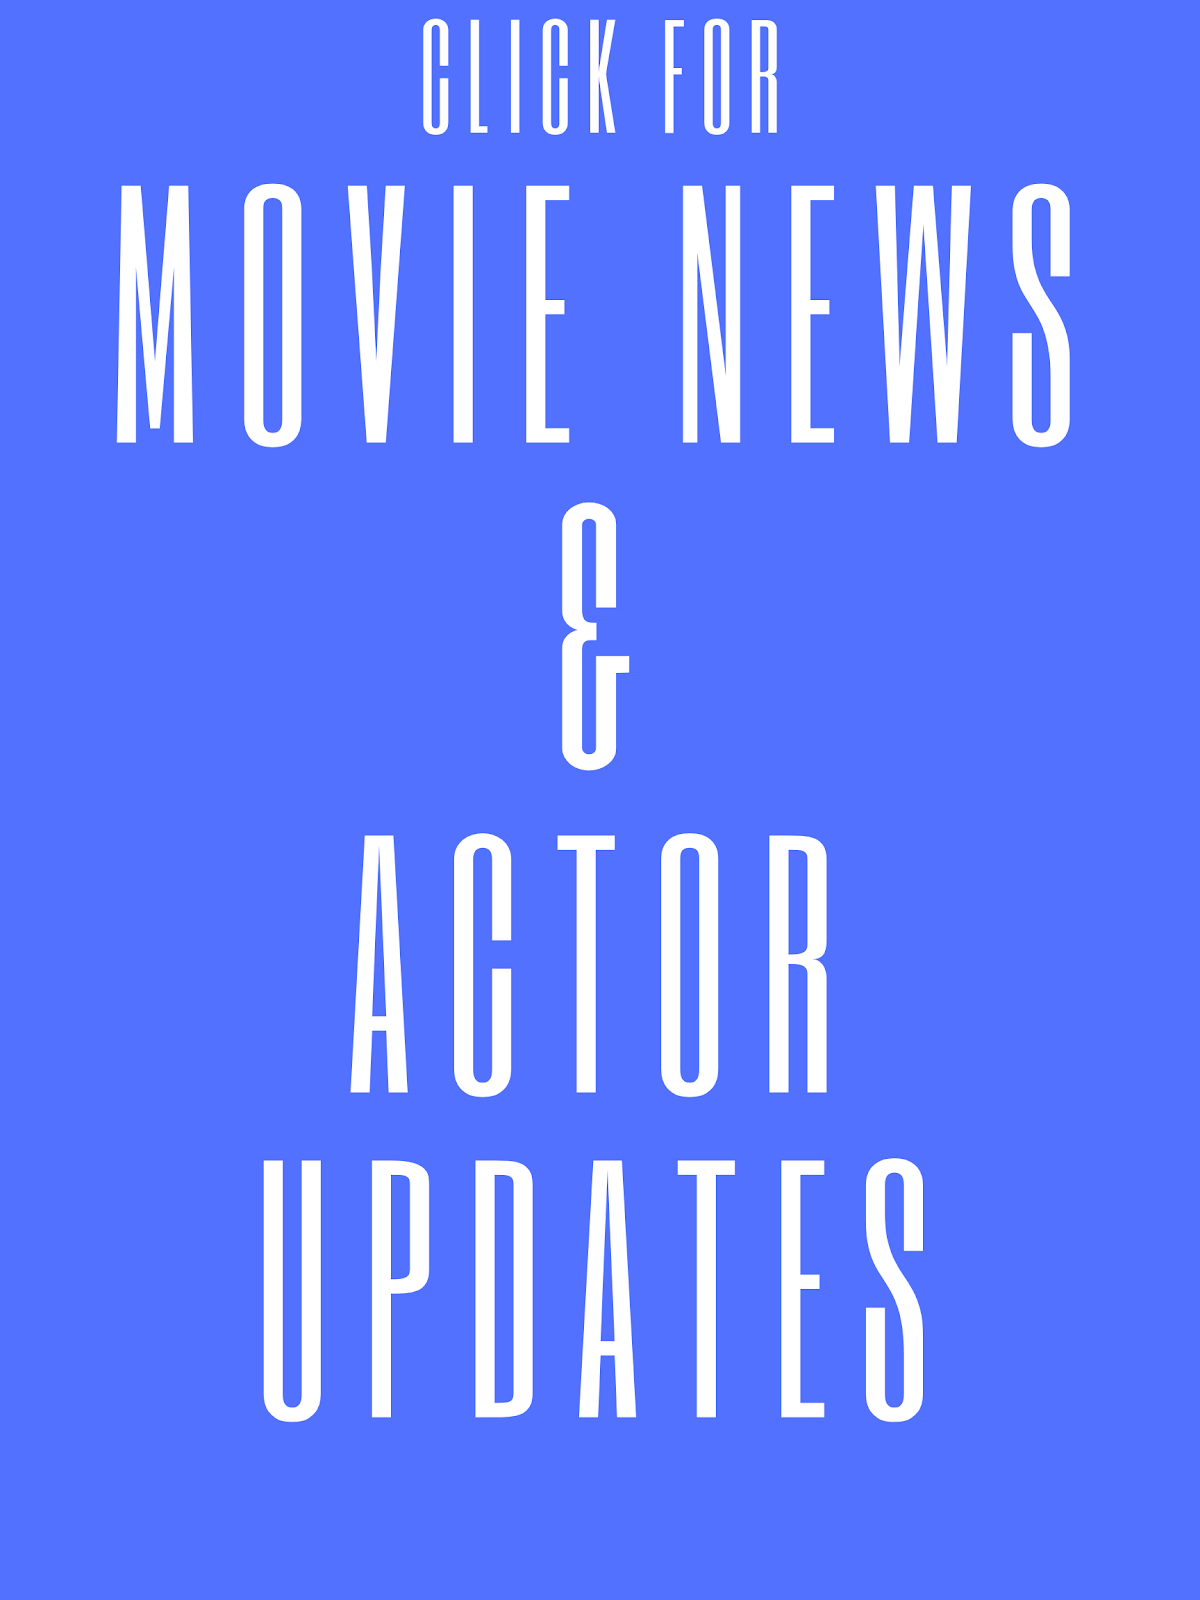 Movie News & Actor Updates